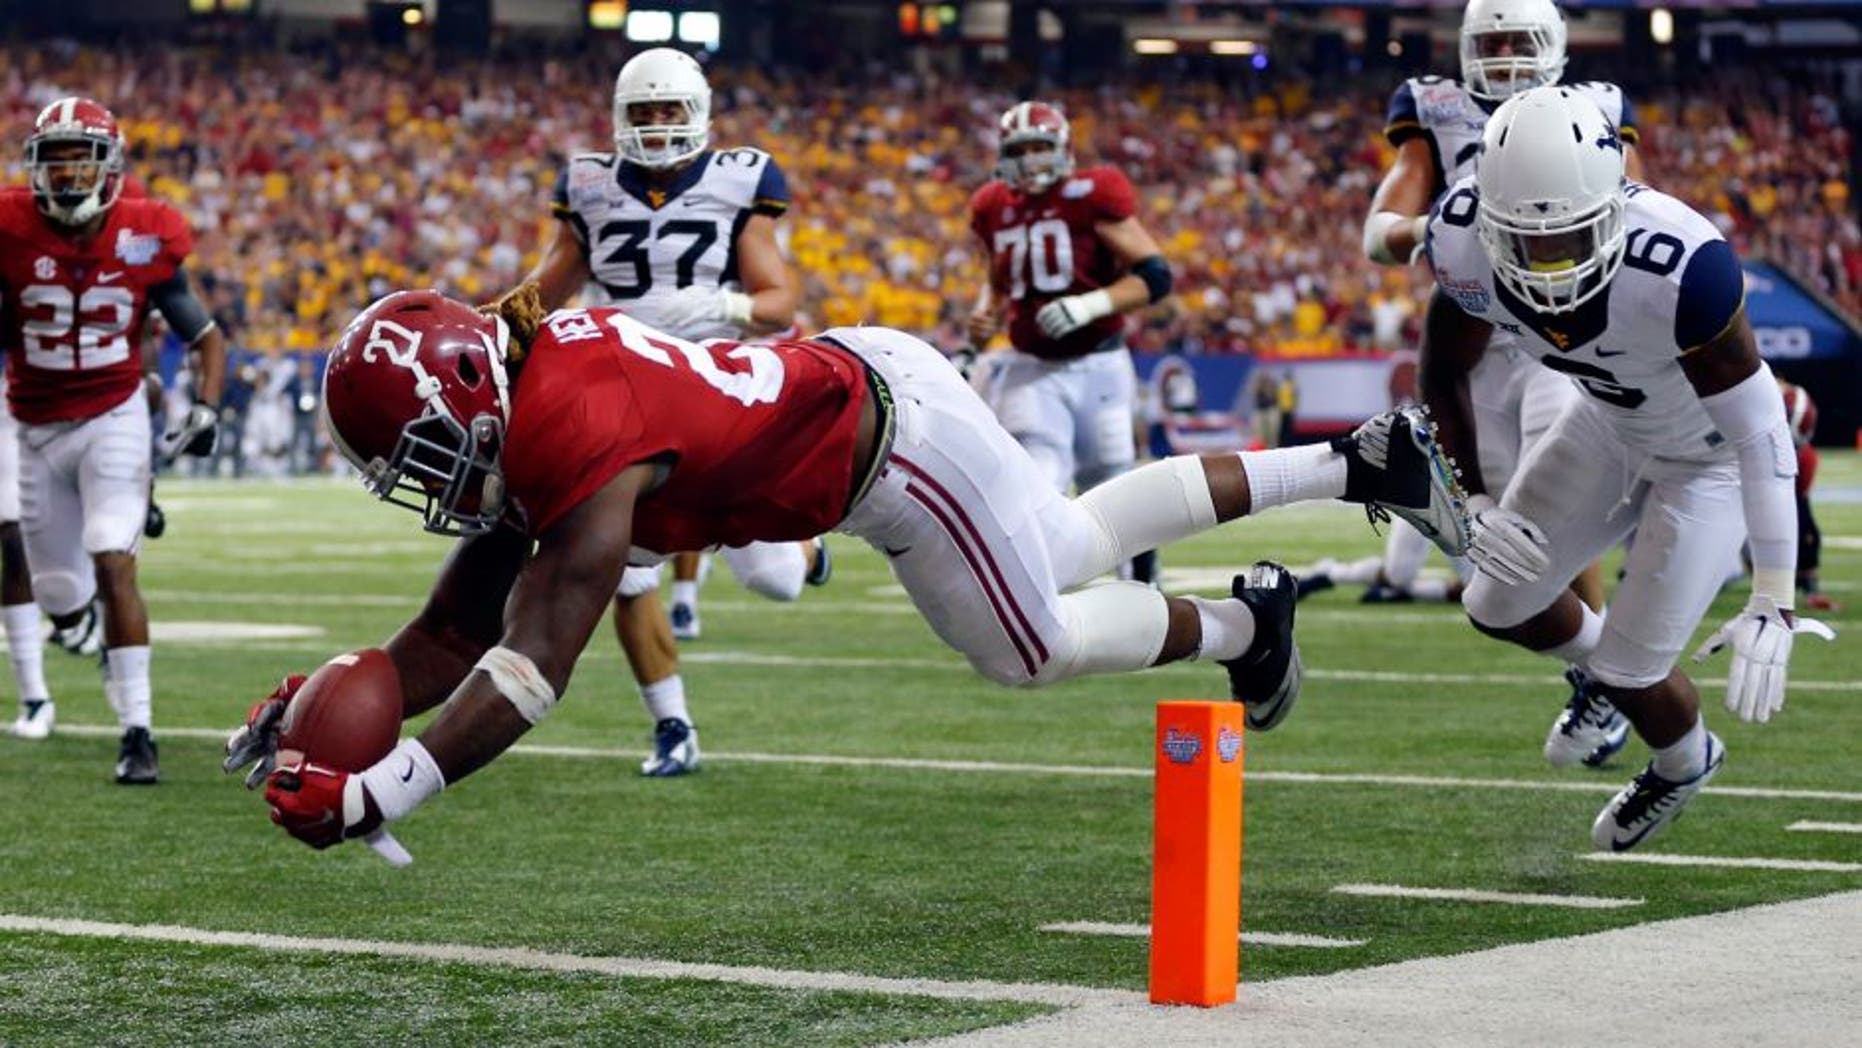 Aug 30, 2014; Atlanta, GA, USA; Alabama Crimson Tide running back Derrick Henry (27) dives for a touchdown against West Virginia Mountaineers cornerback Dravon Henry (6) during the third quarter of the 2014 Chick-fil-a kickoff game at Georgia Dome. Mandatory Credit: Paul Abell-USA TODAY Sports